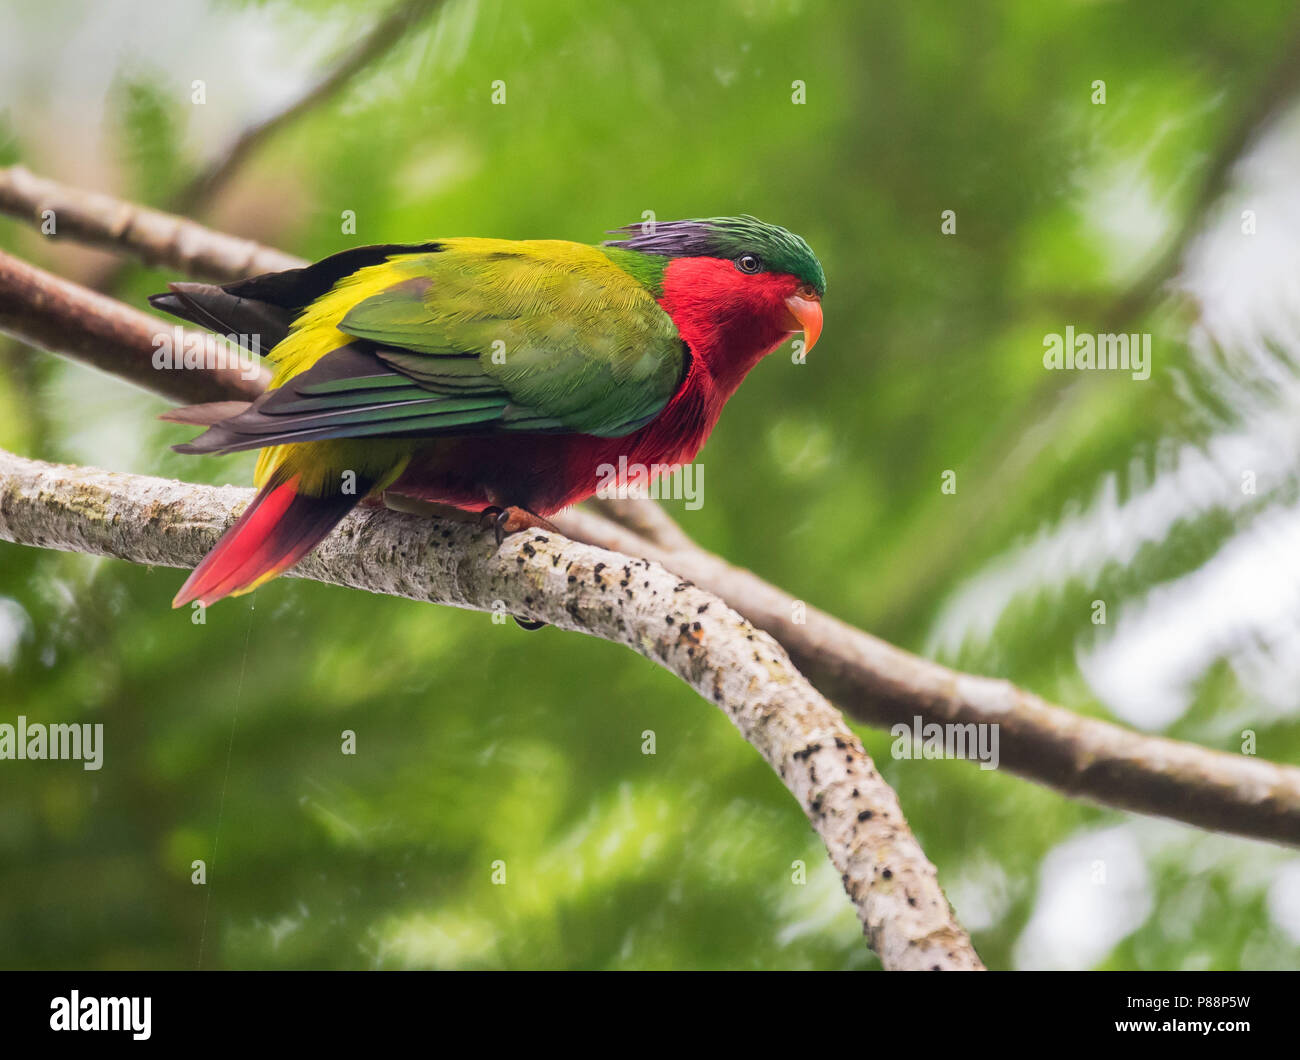 Kuhl's Lorikeet (Vini kuhlii). Now reintroduced, by the Cook Islands Natural Heritage Trust and numerous conservation bodies, to Atiu in the Cook Isla - Stock Image